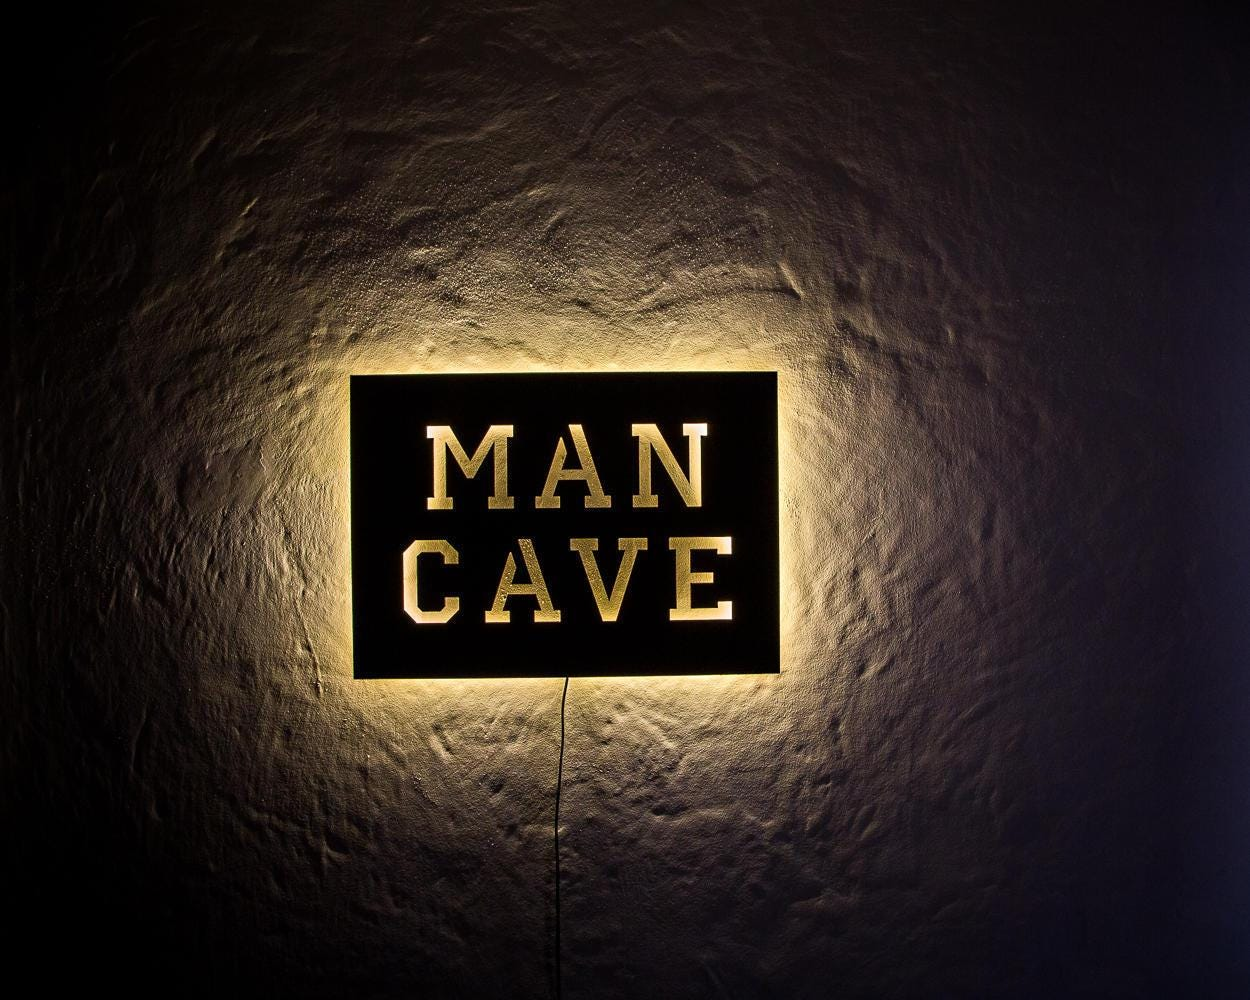 Cool Man Cave Signs : Man cave led sign wall art handmade from mdf unique